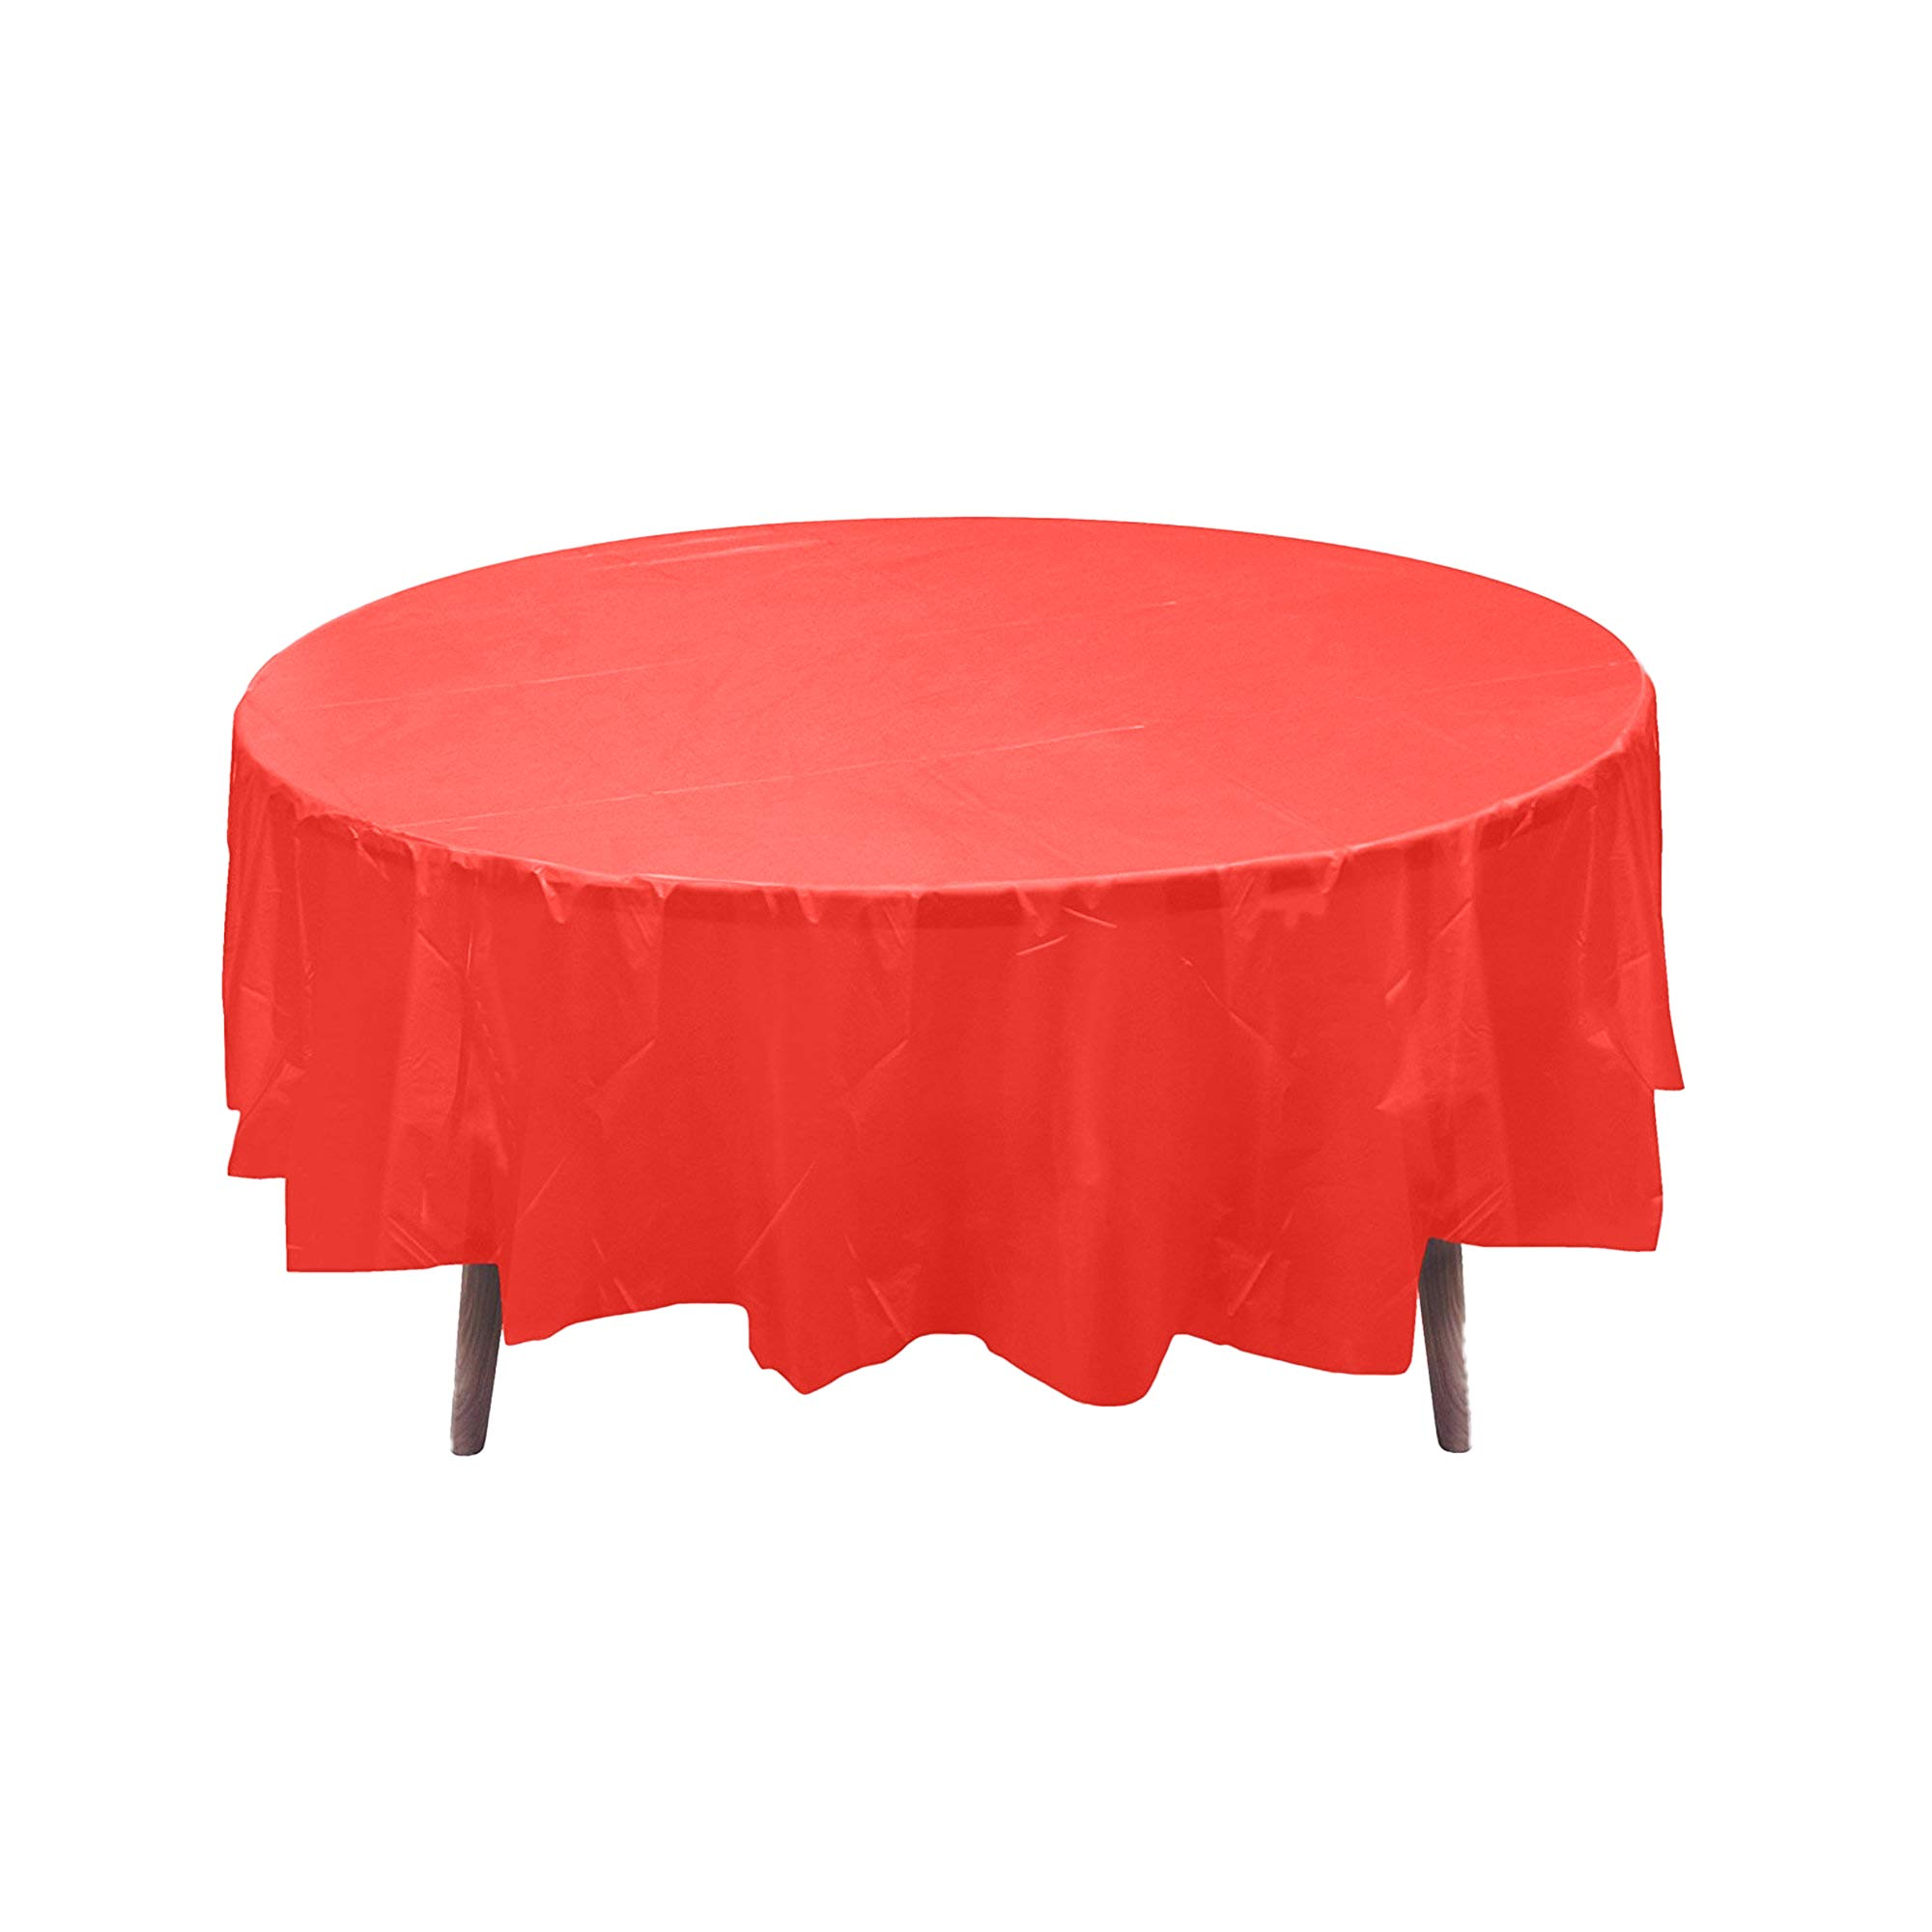 12 84'' Red Round Plastic Table Covers Tablecloths Disposable Party Picnic Table Decoration Supplies.